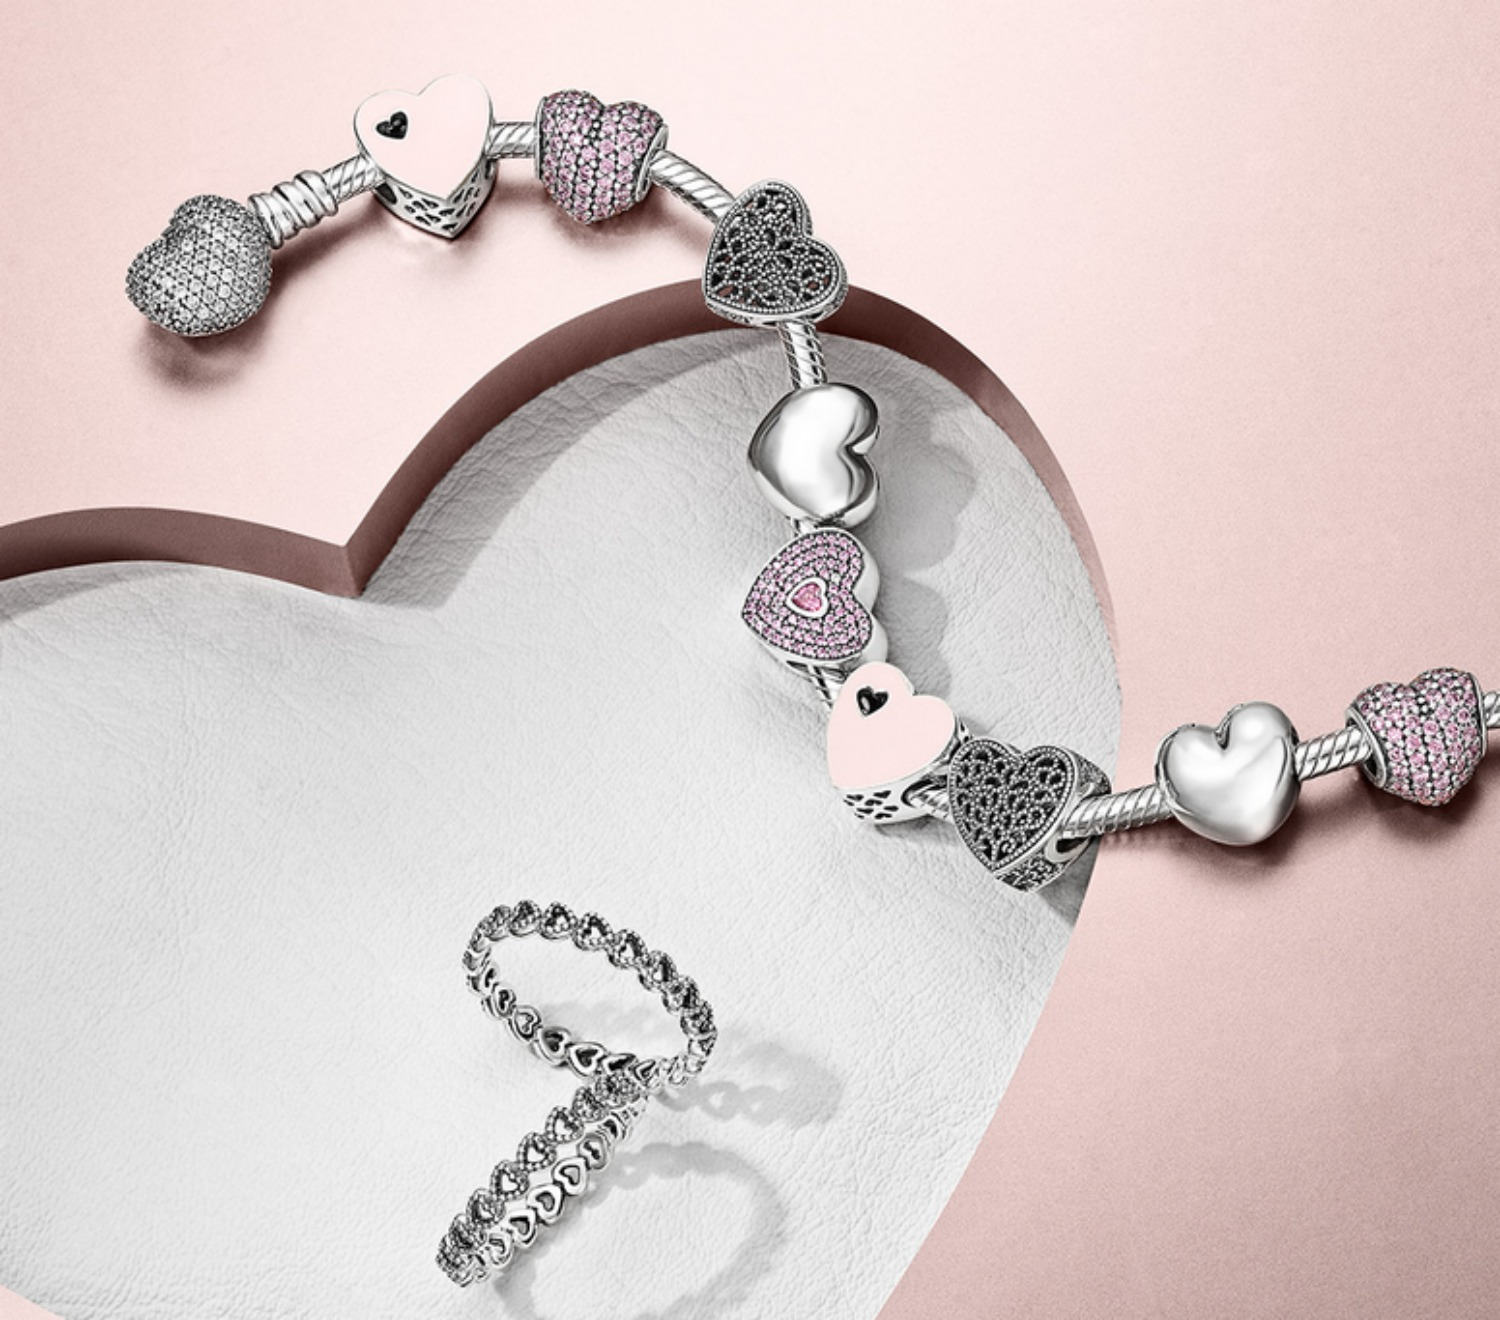 as per usual with all pandora jewelry the fine details and great craftmanship create an universe filled with grace and timeless elegance - Pandora Valentines